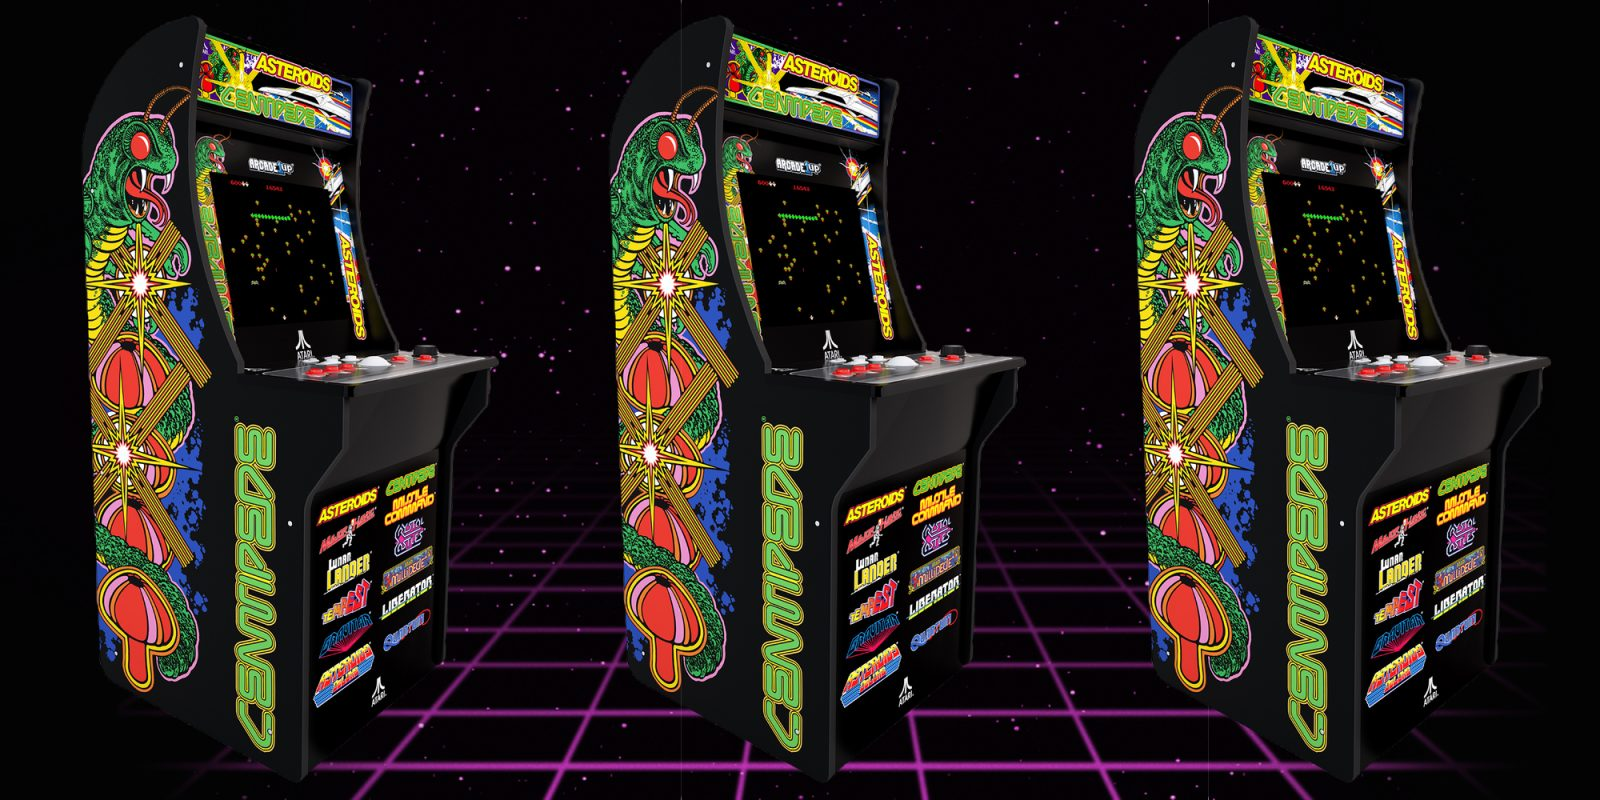 Complete your game room w/ Arcade1Up's Deluxe 12-in-1